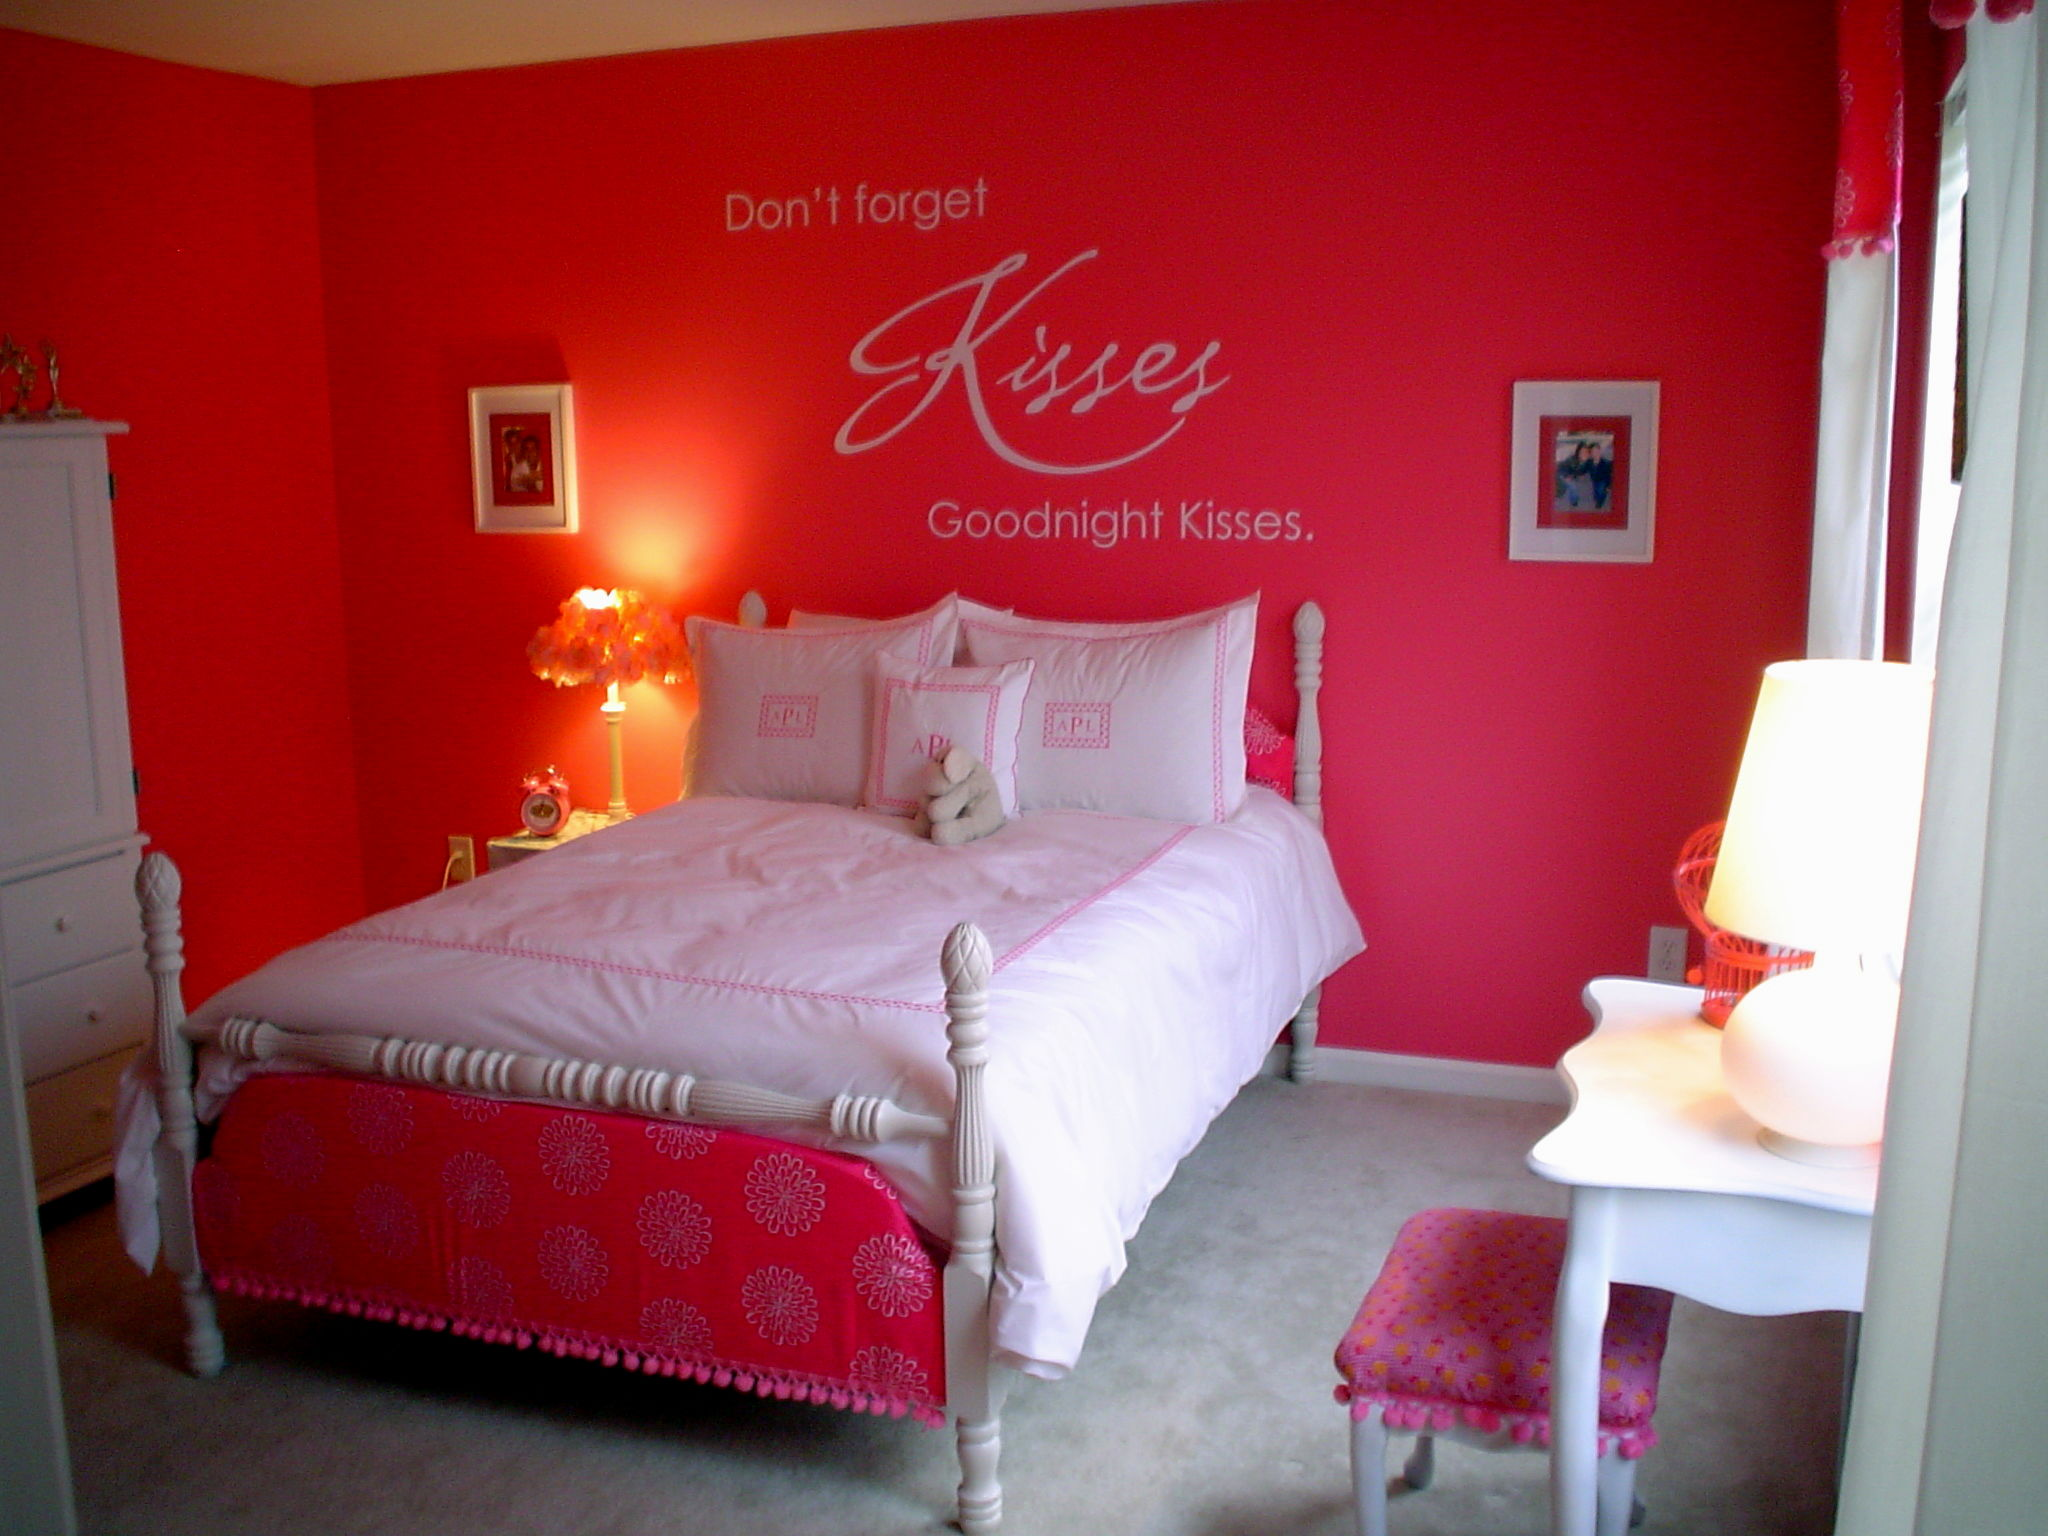 best of pink bathroom decorating ideas picture-Cool Pink Bathroom Decorating Ideas Picture